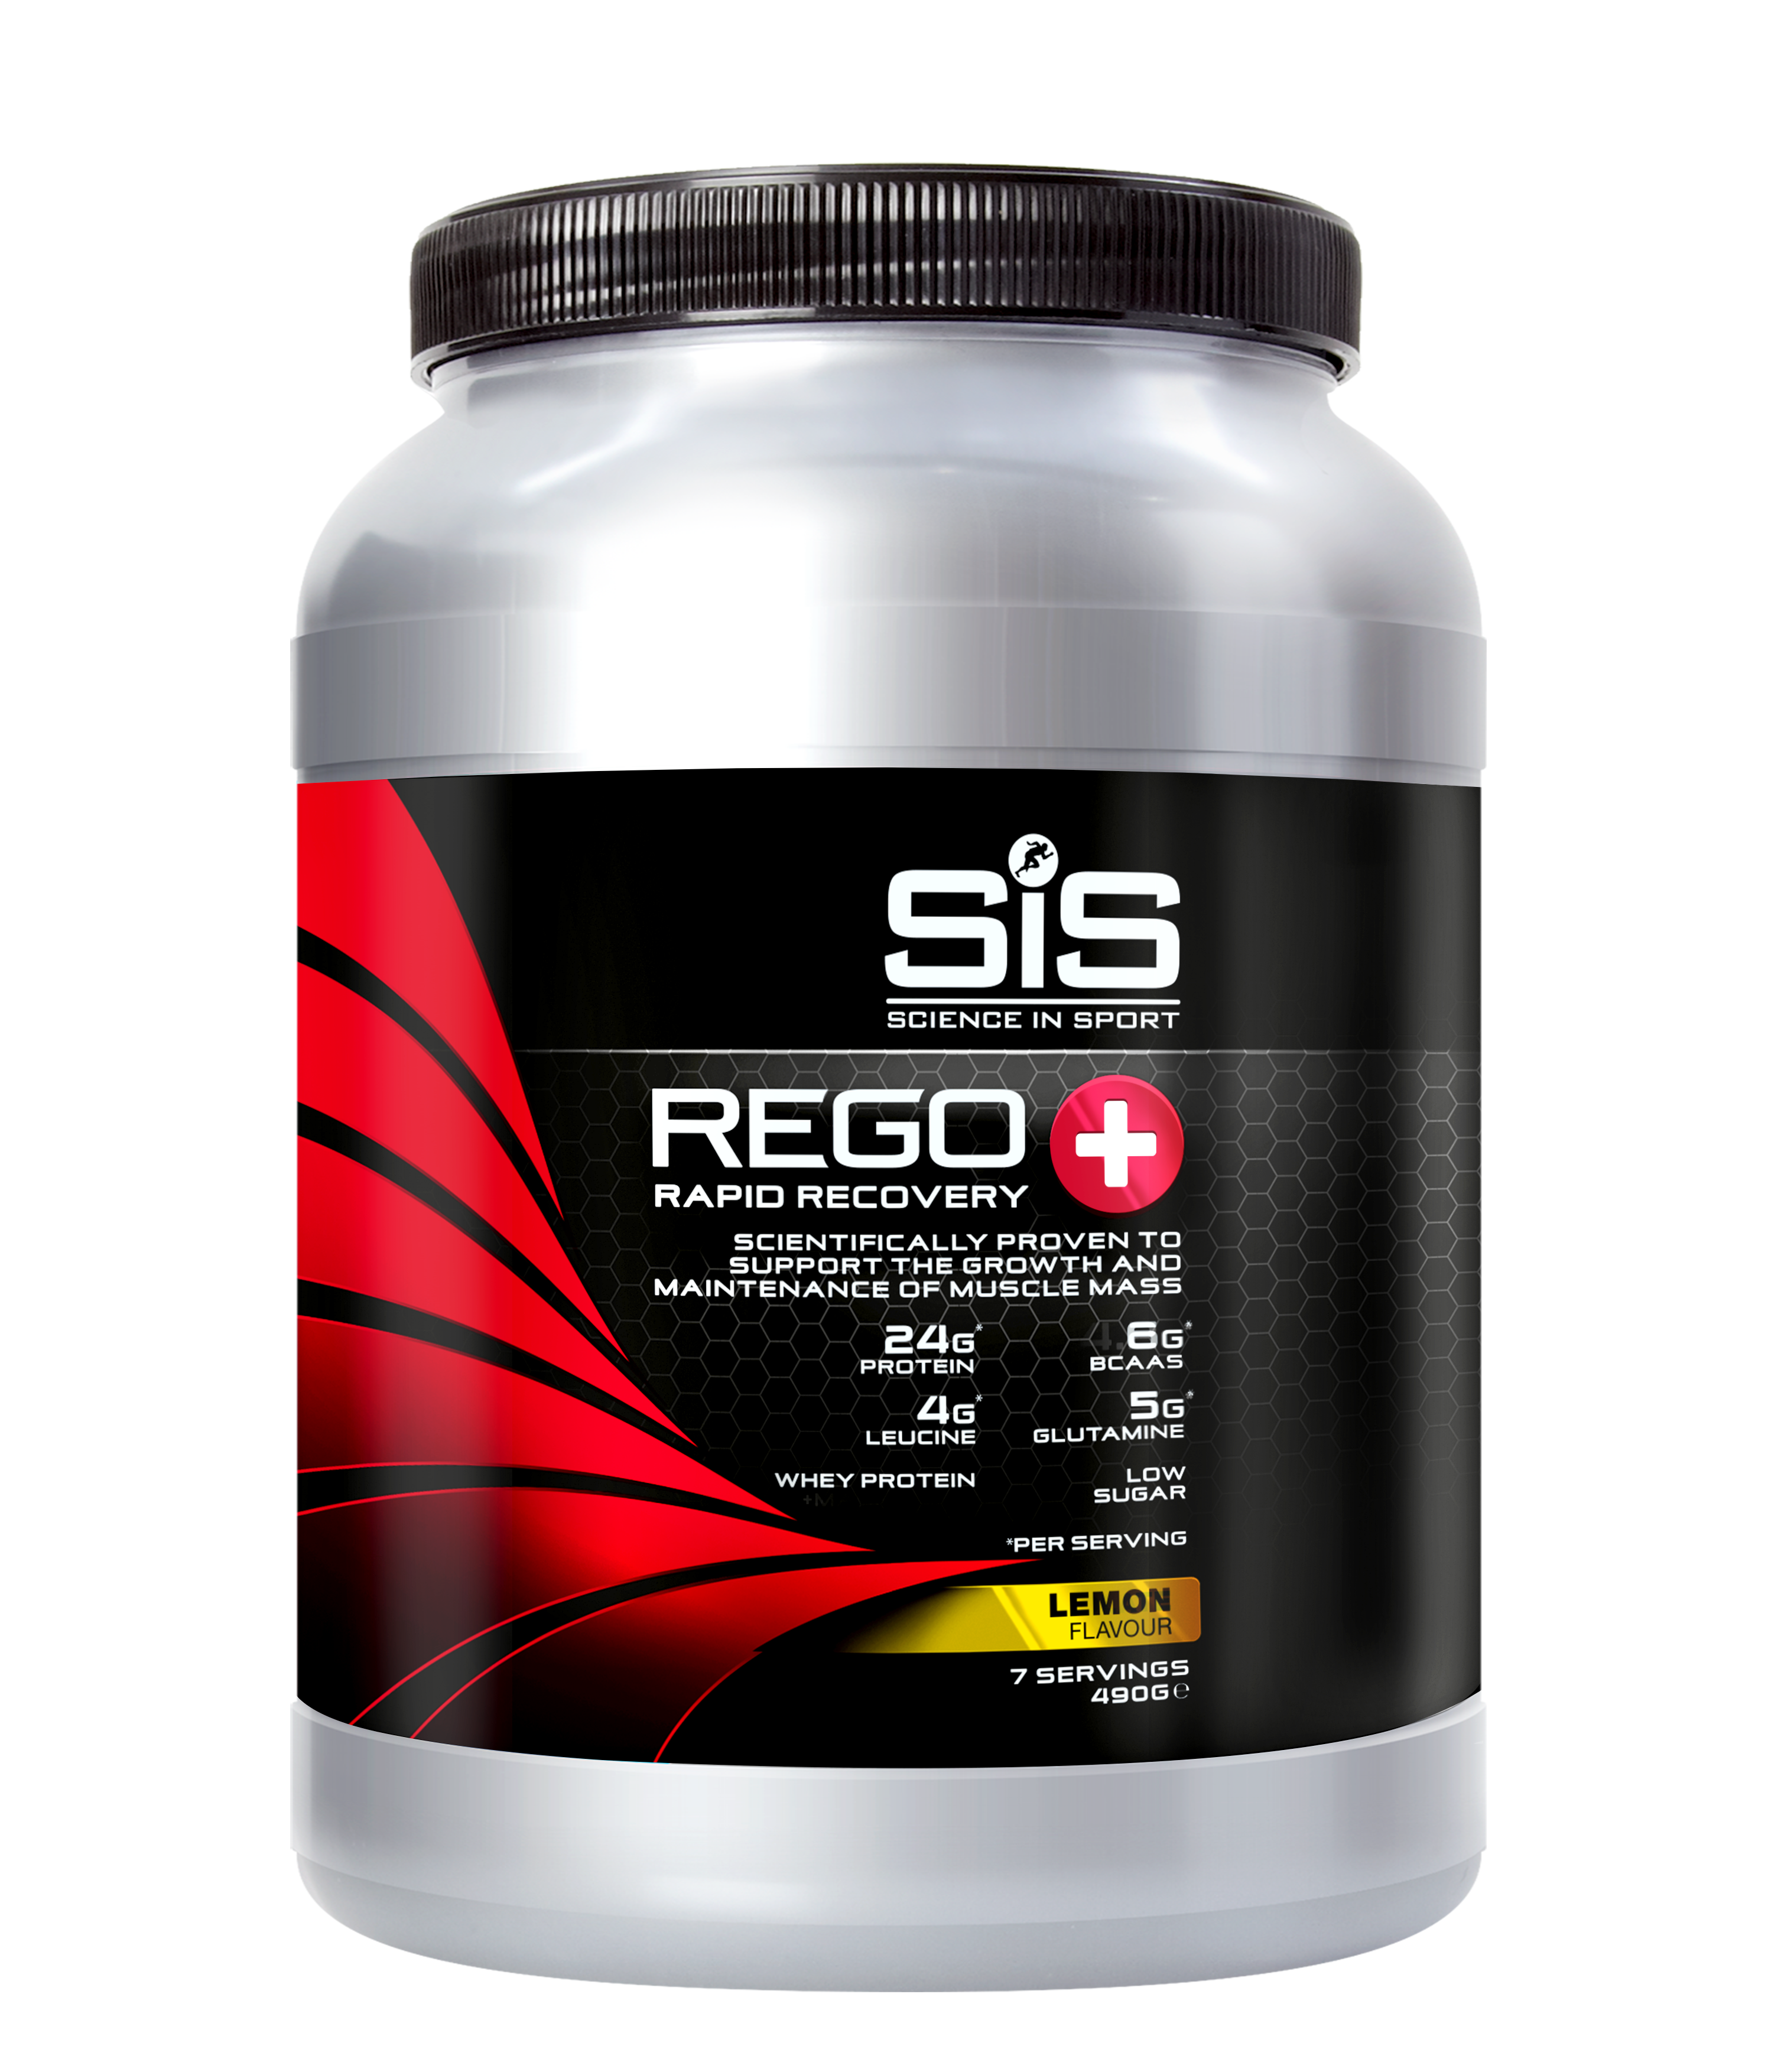 SiS REGO Rapid Recovery + /490g/ citron